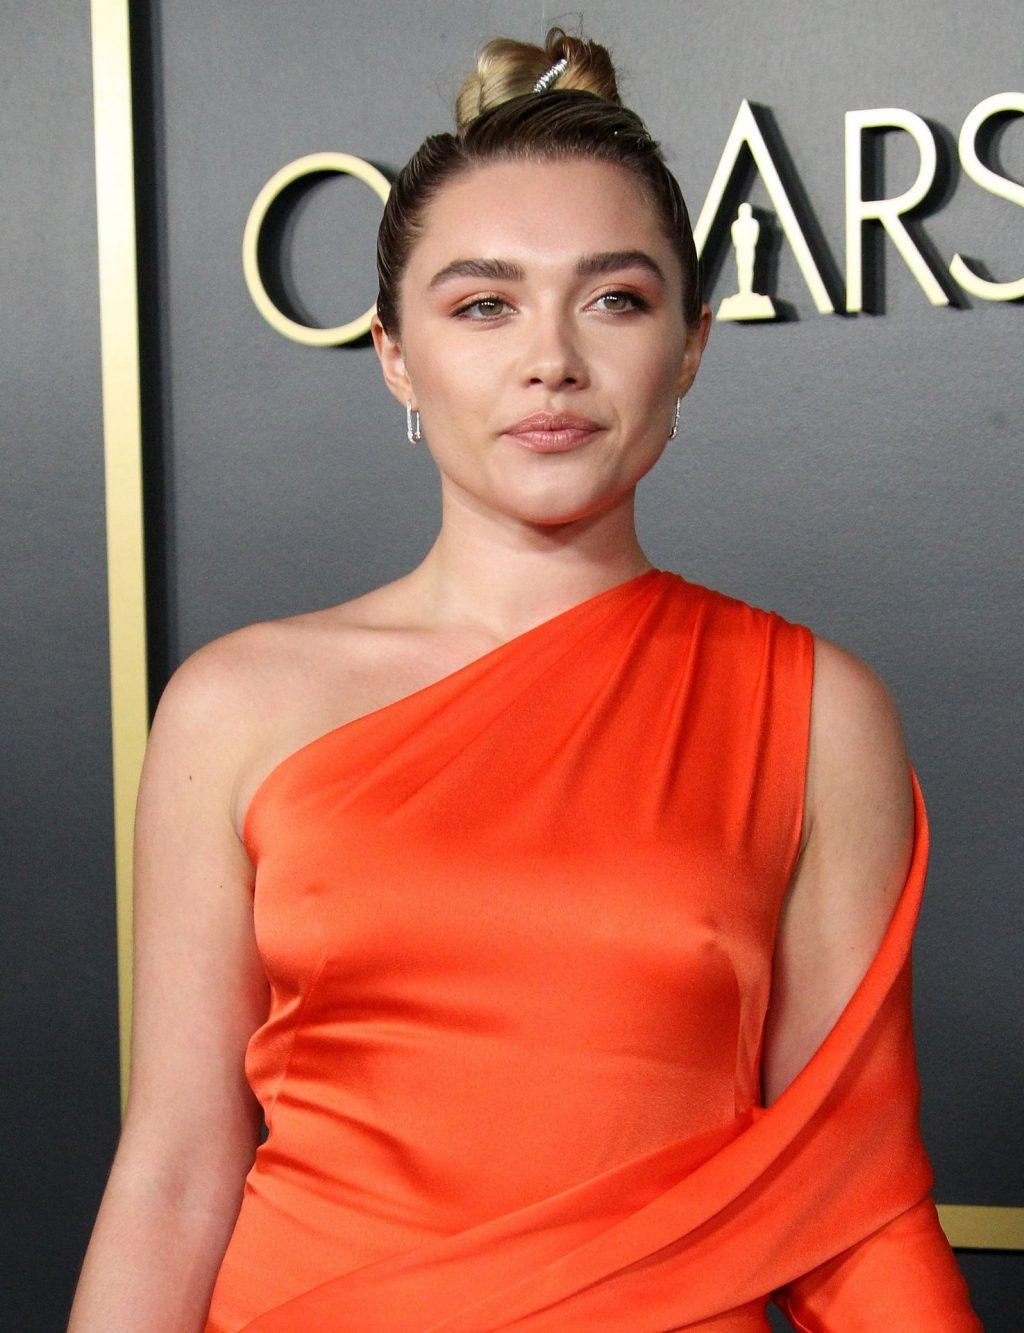 Florence Pugh Shows Her Pokies at the 92nd Academy Awards Nominees Luncheon (48 Photos)